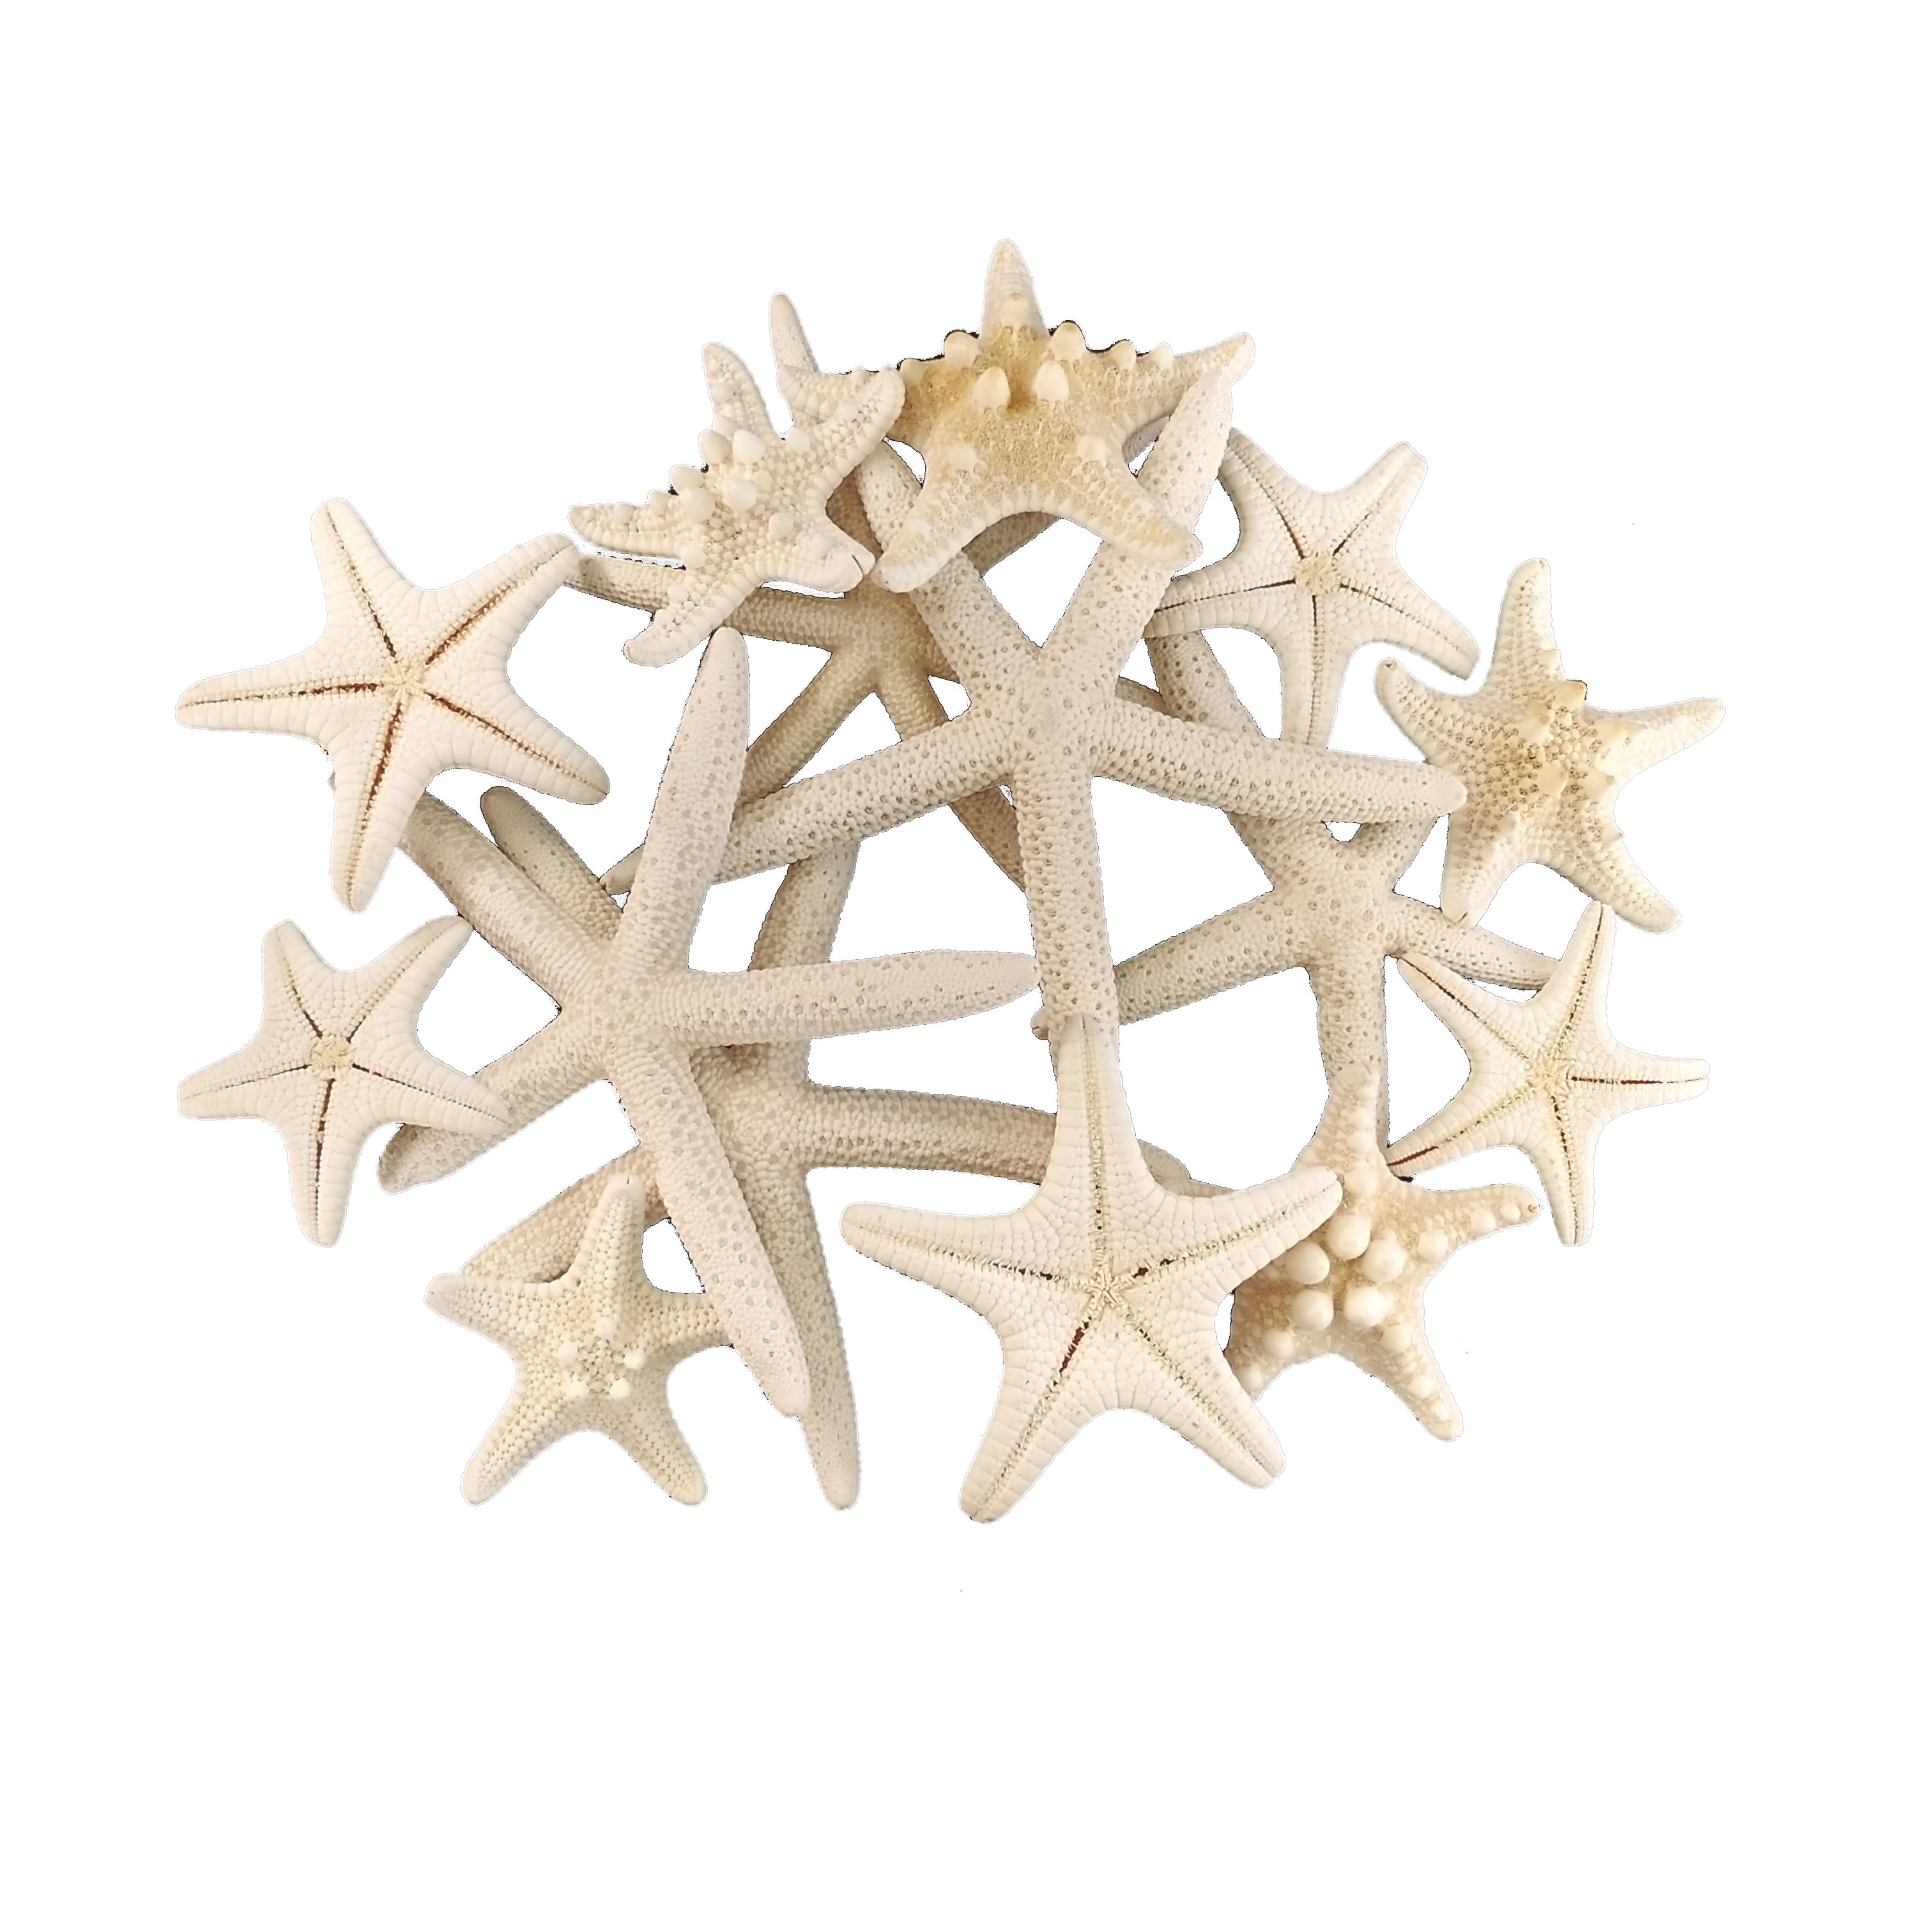 4-8cm 1-6Pcs White Starfish Craft Decoration Natural Finger Sea Star Wedding Decor Seashells Seafish Party Beige Seastar Crafts